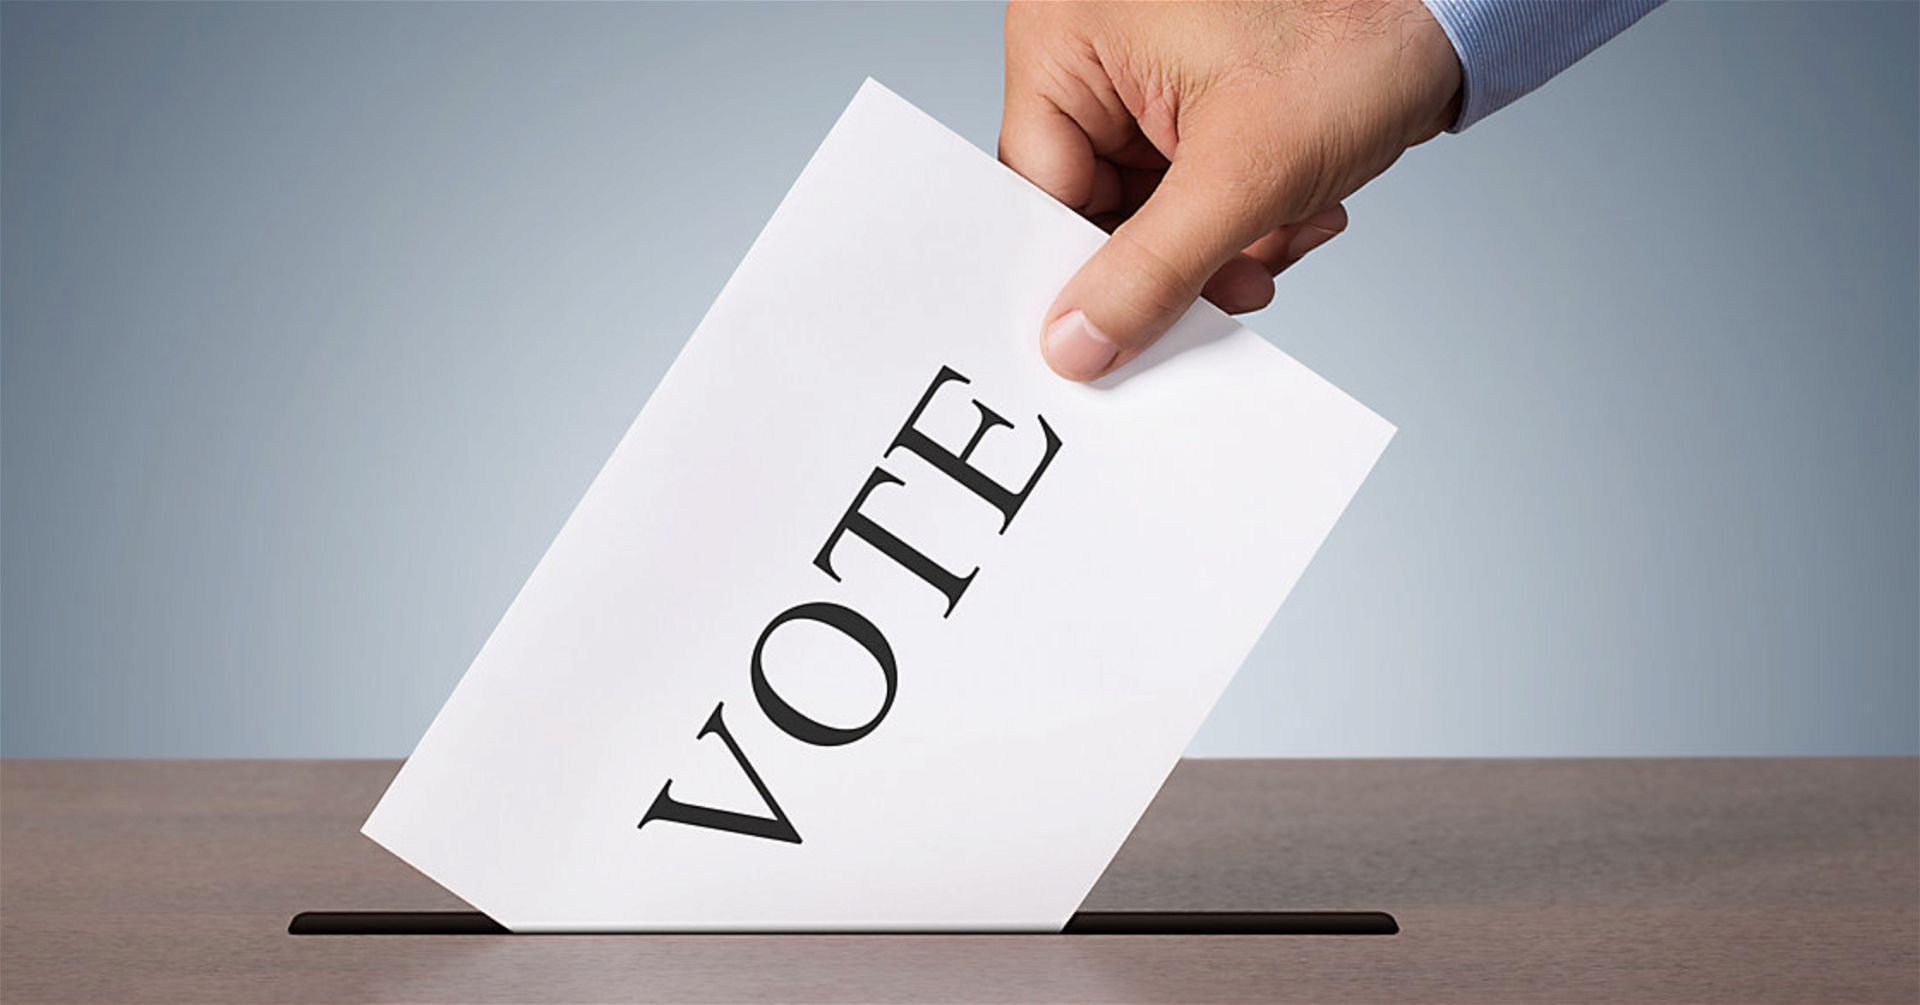 Some Dangerous Voting Trends Among Christians